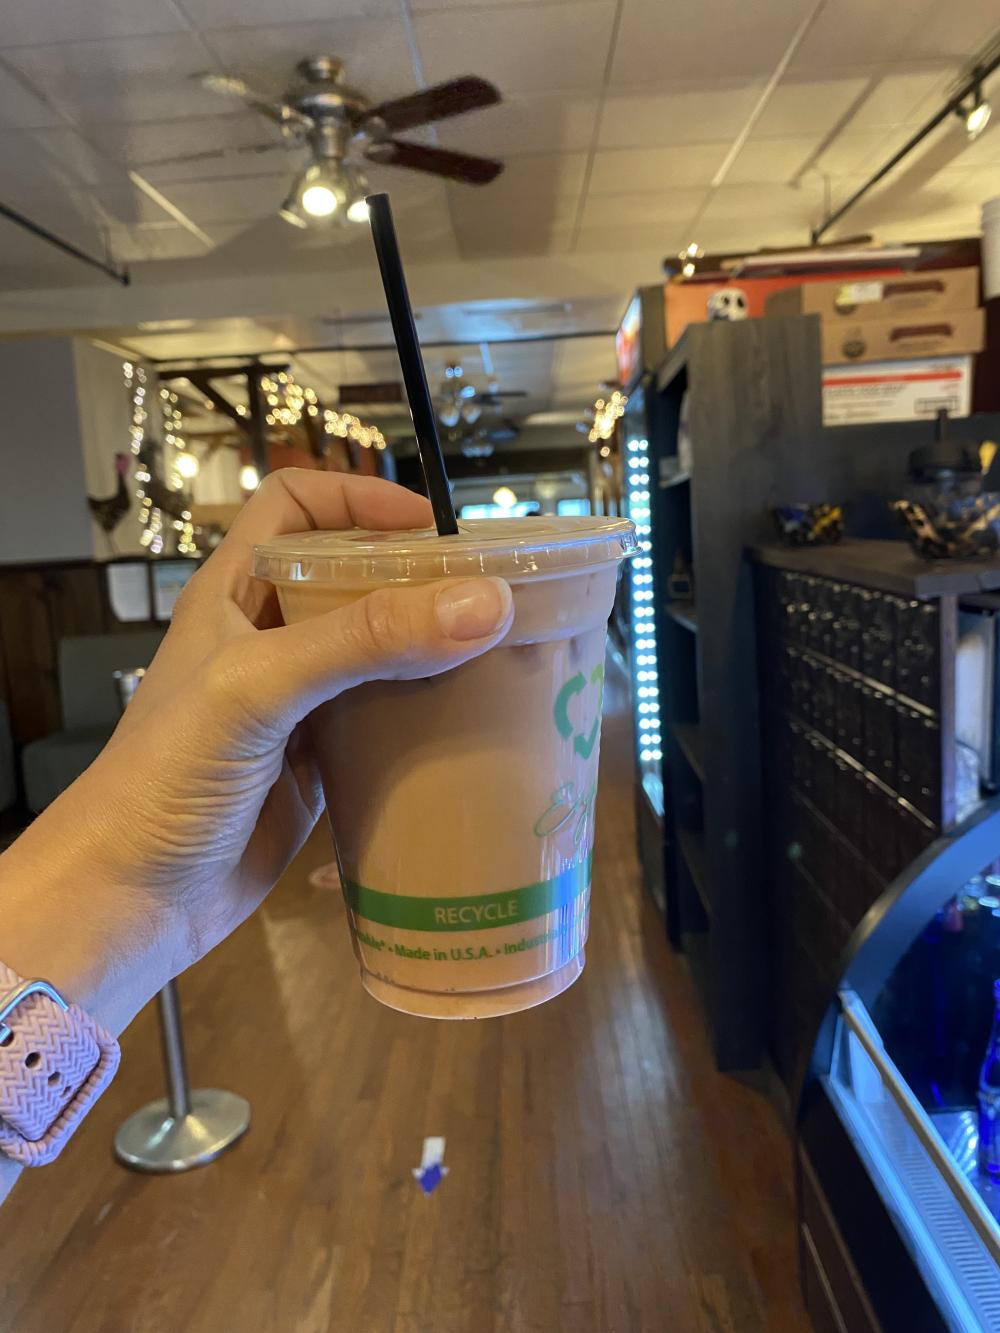 A womans hand holds up an iced coffee drink in a shop.